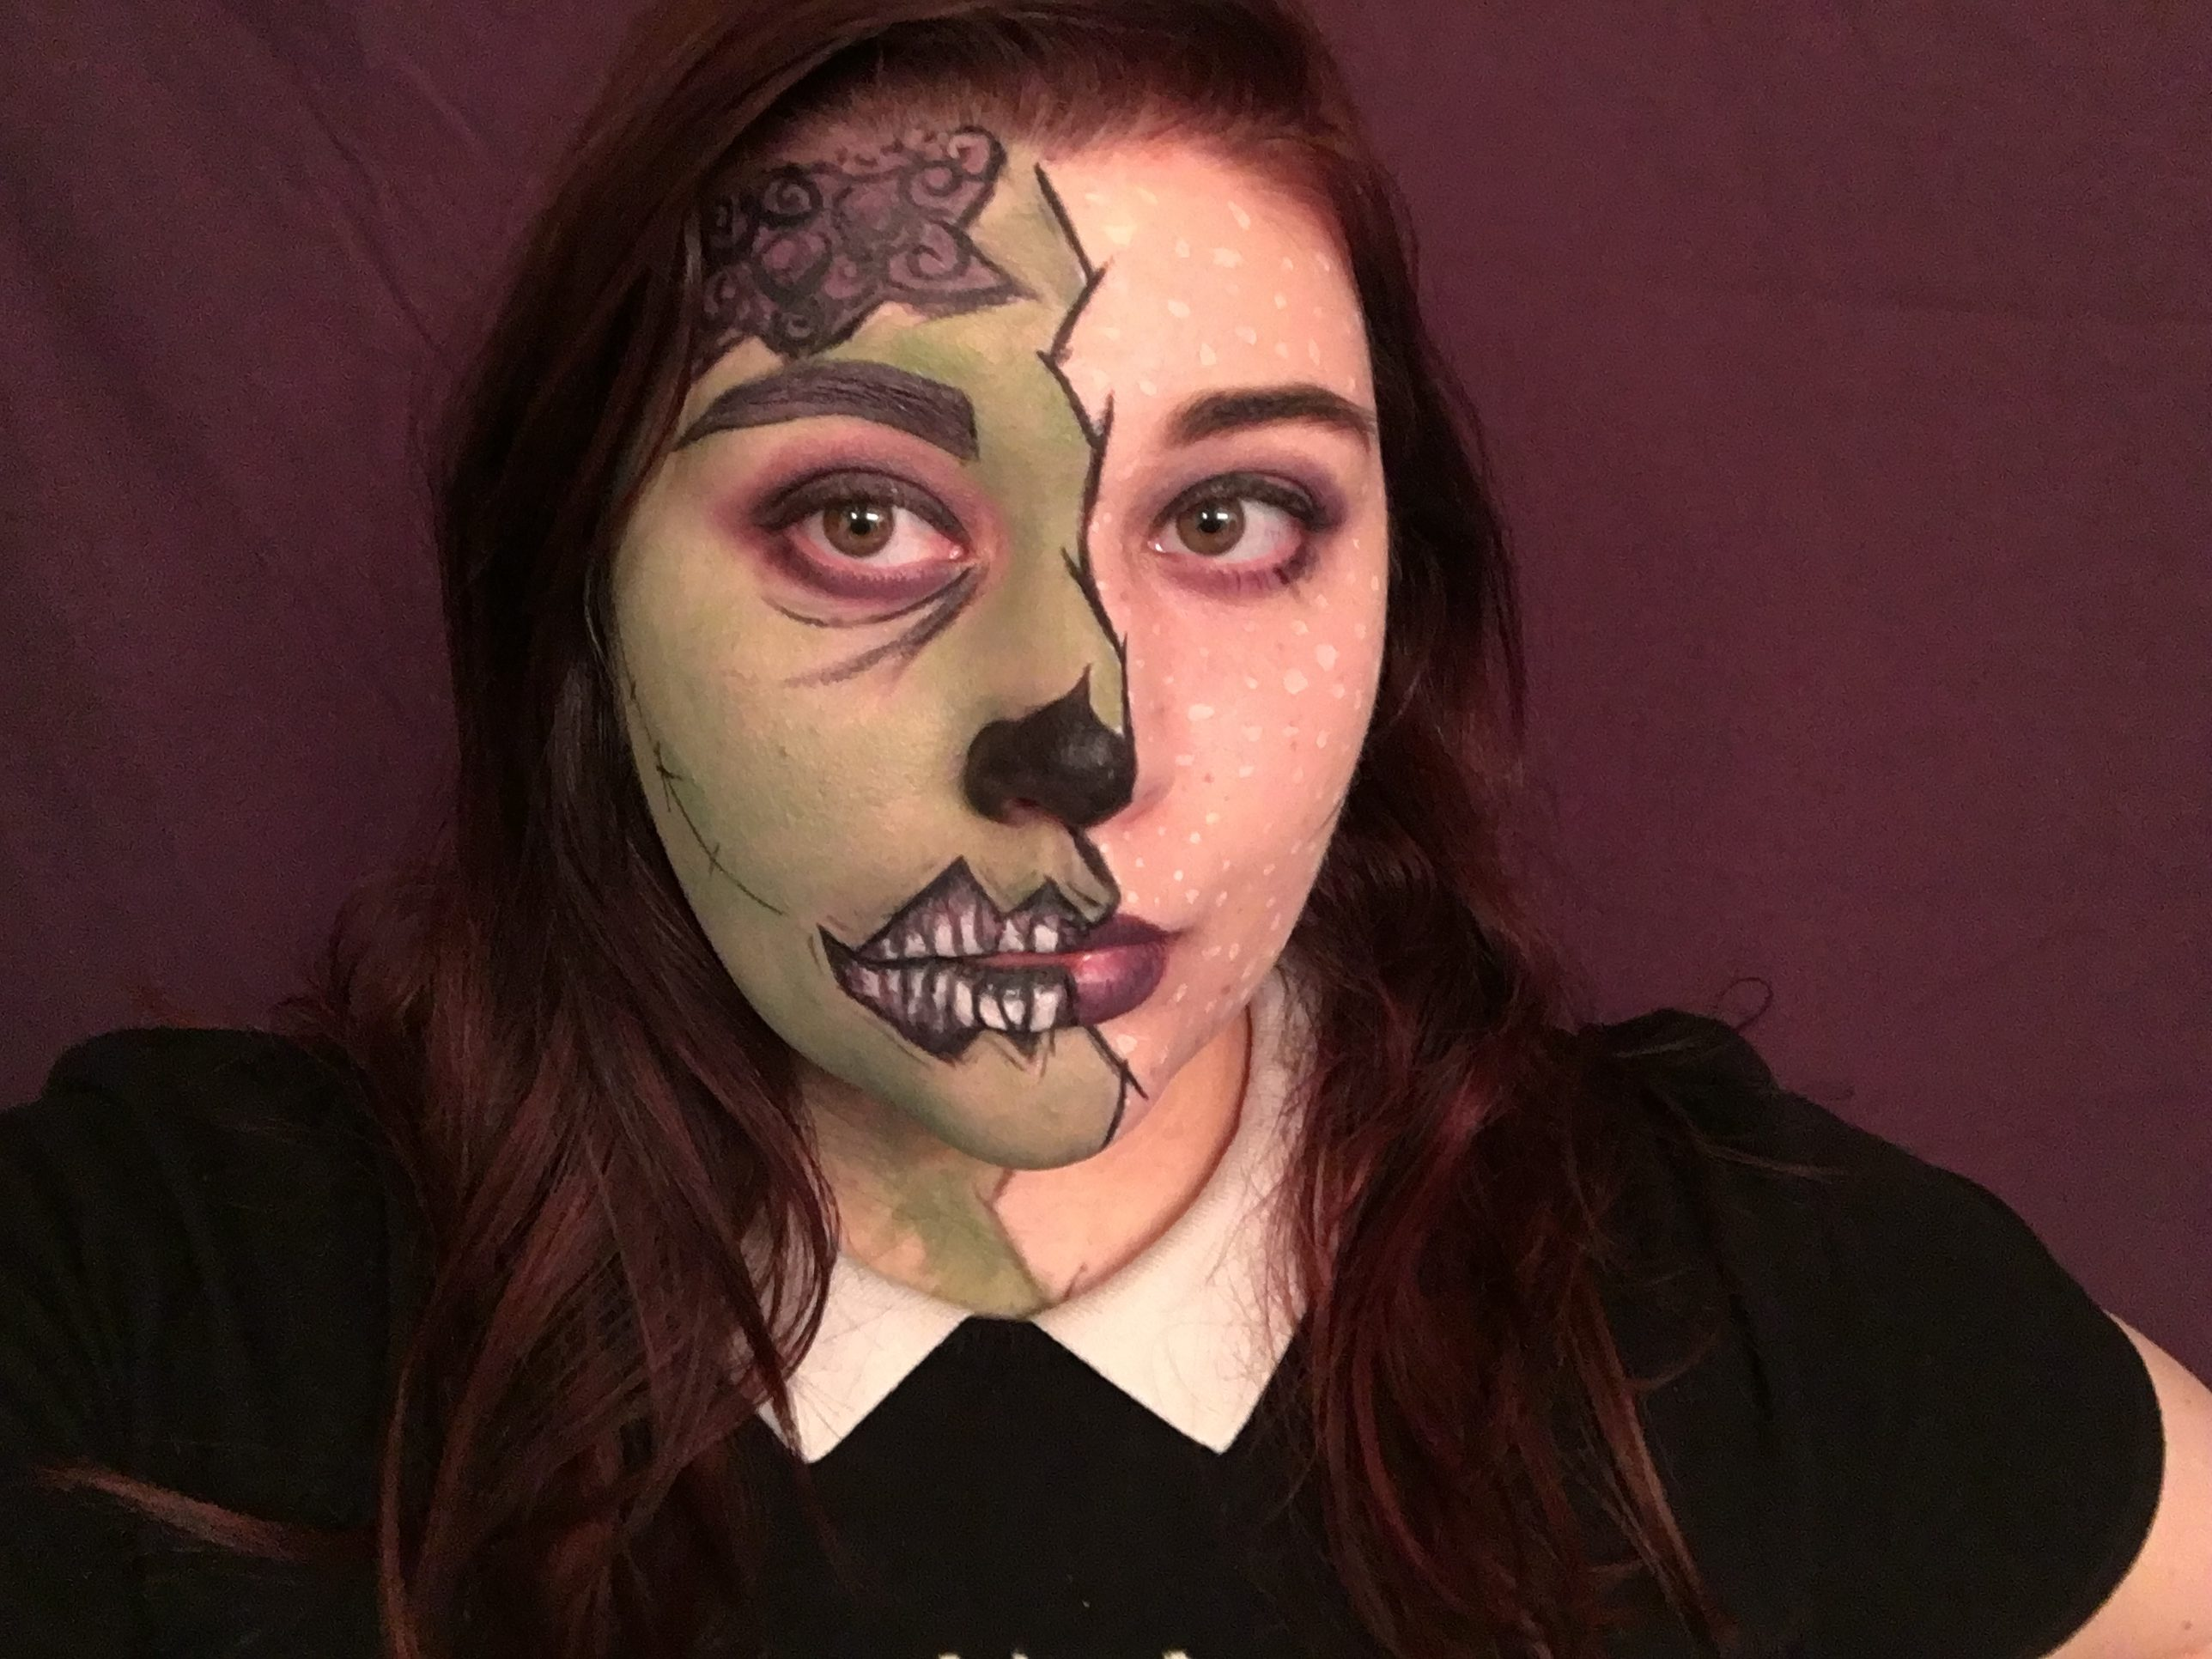 Pop Art Zombie Makeup Tutorial - Click through to see the full organic makeup tutorial to